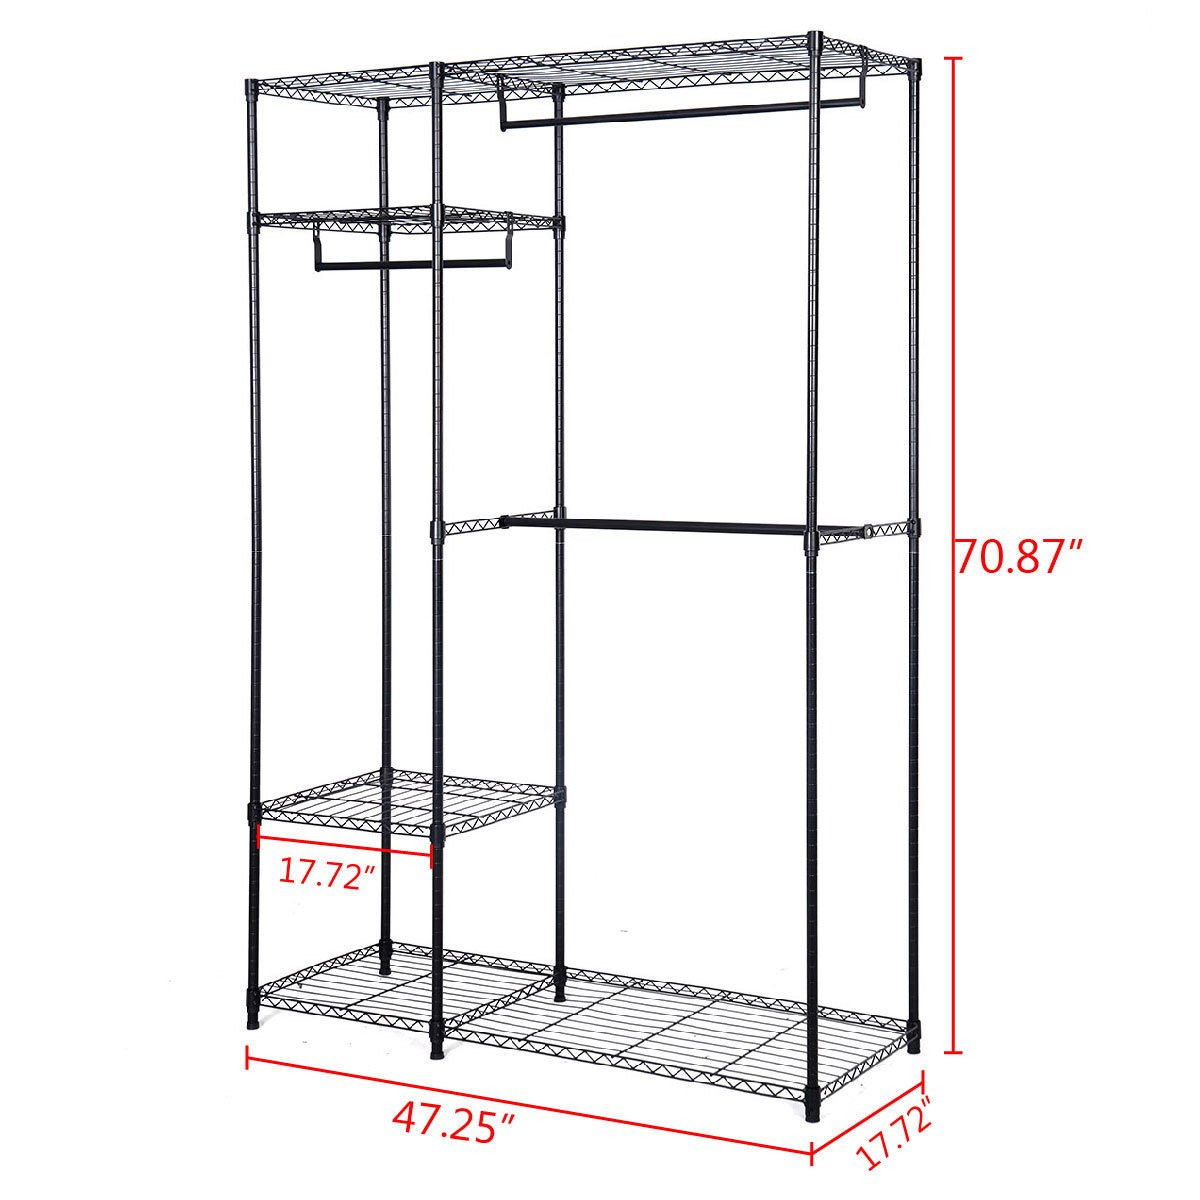 48 inch x18 inch x71 inch Closet Organizer Garment Rack Portable Clothes Hanger Home Shelf Brand New And Large Storage Capacity